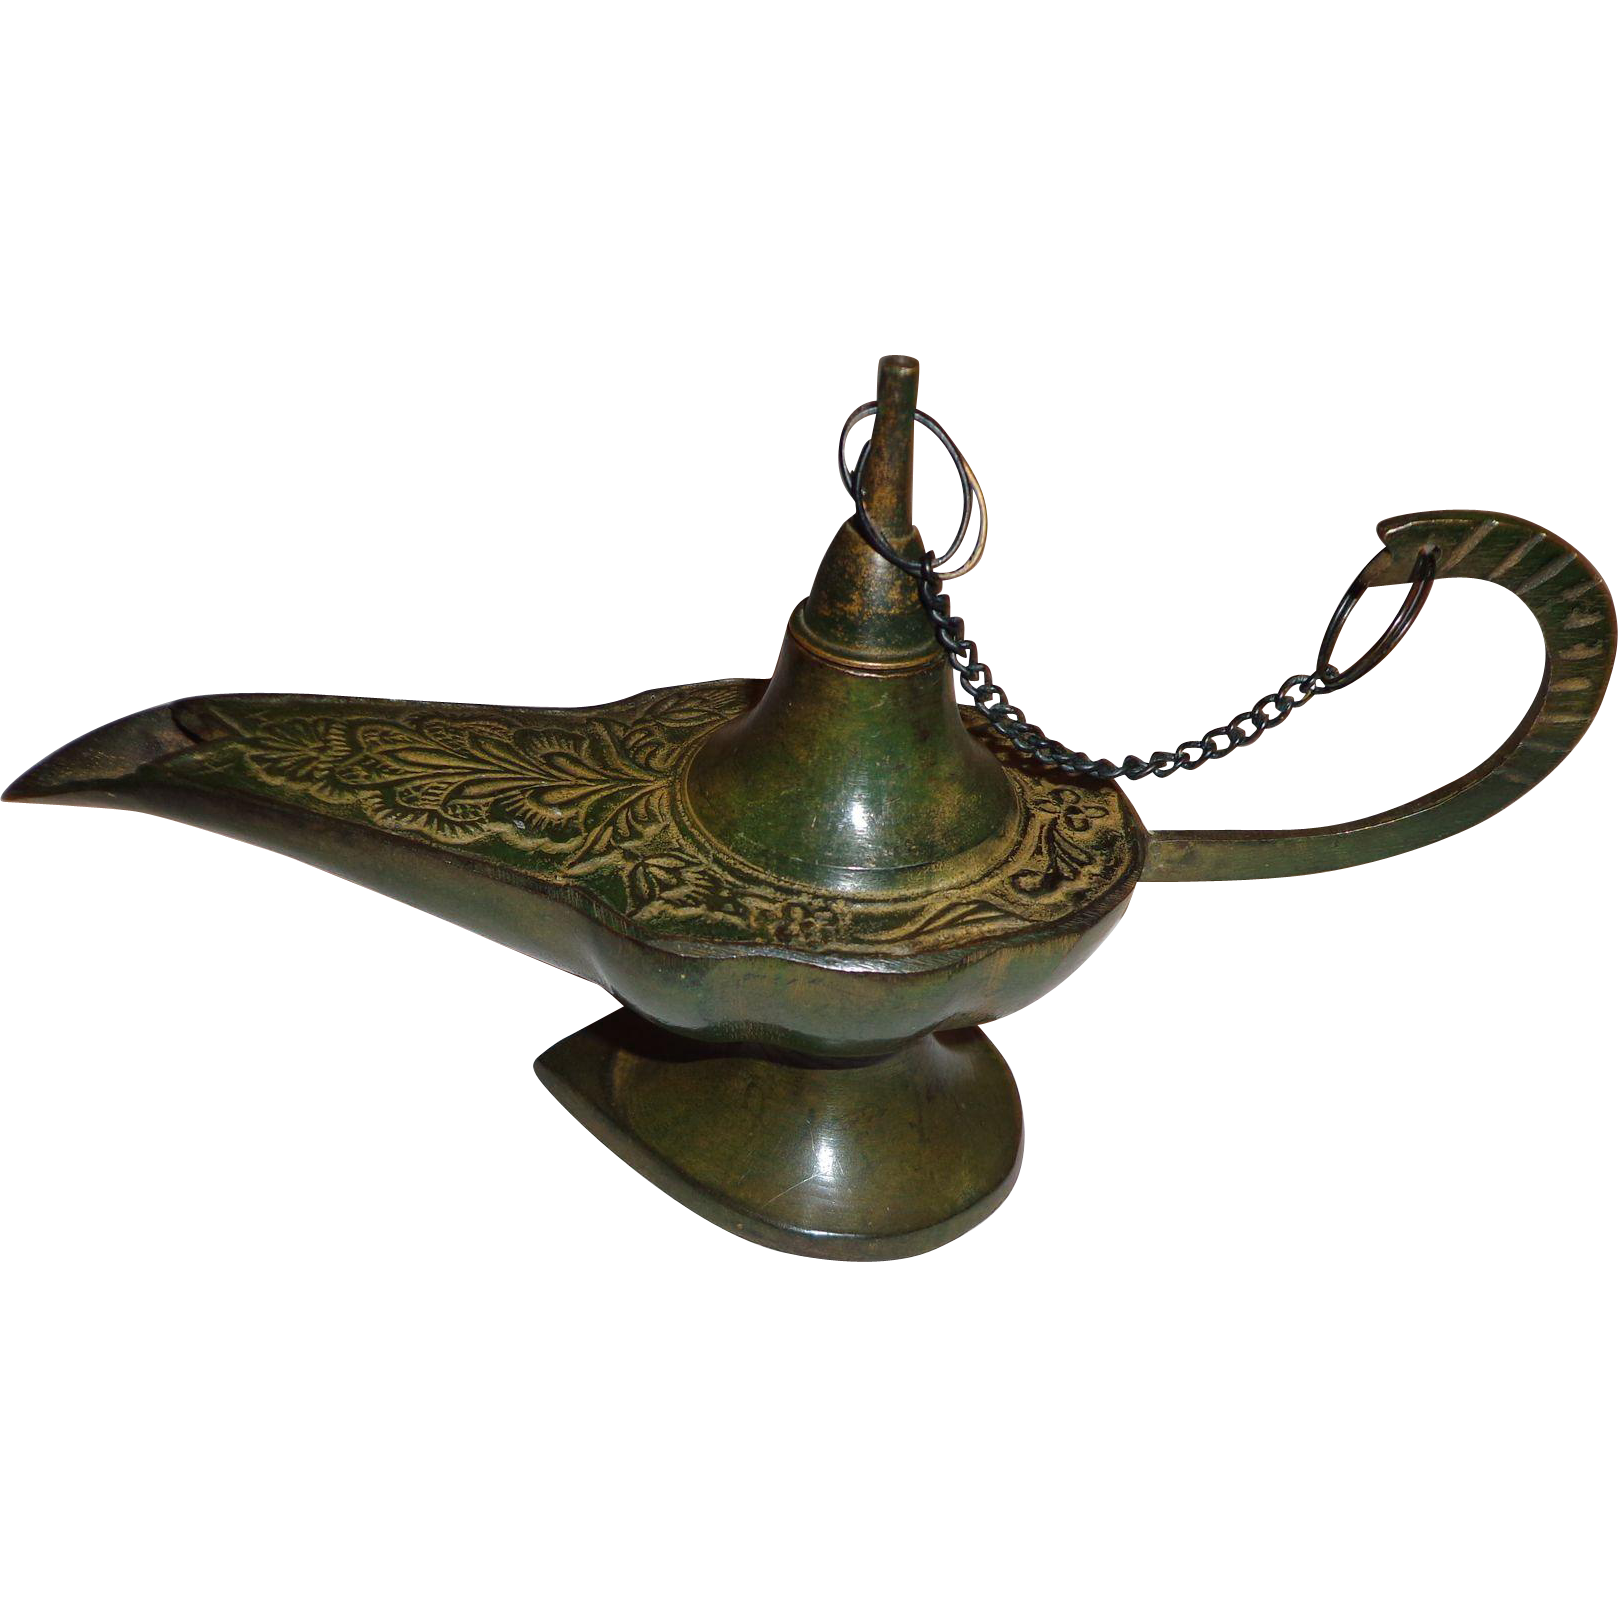 10 Facts About Genie Lamp